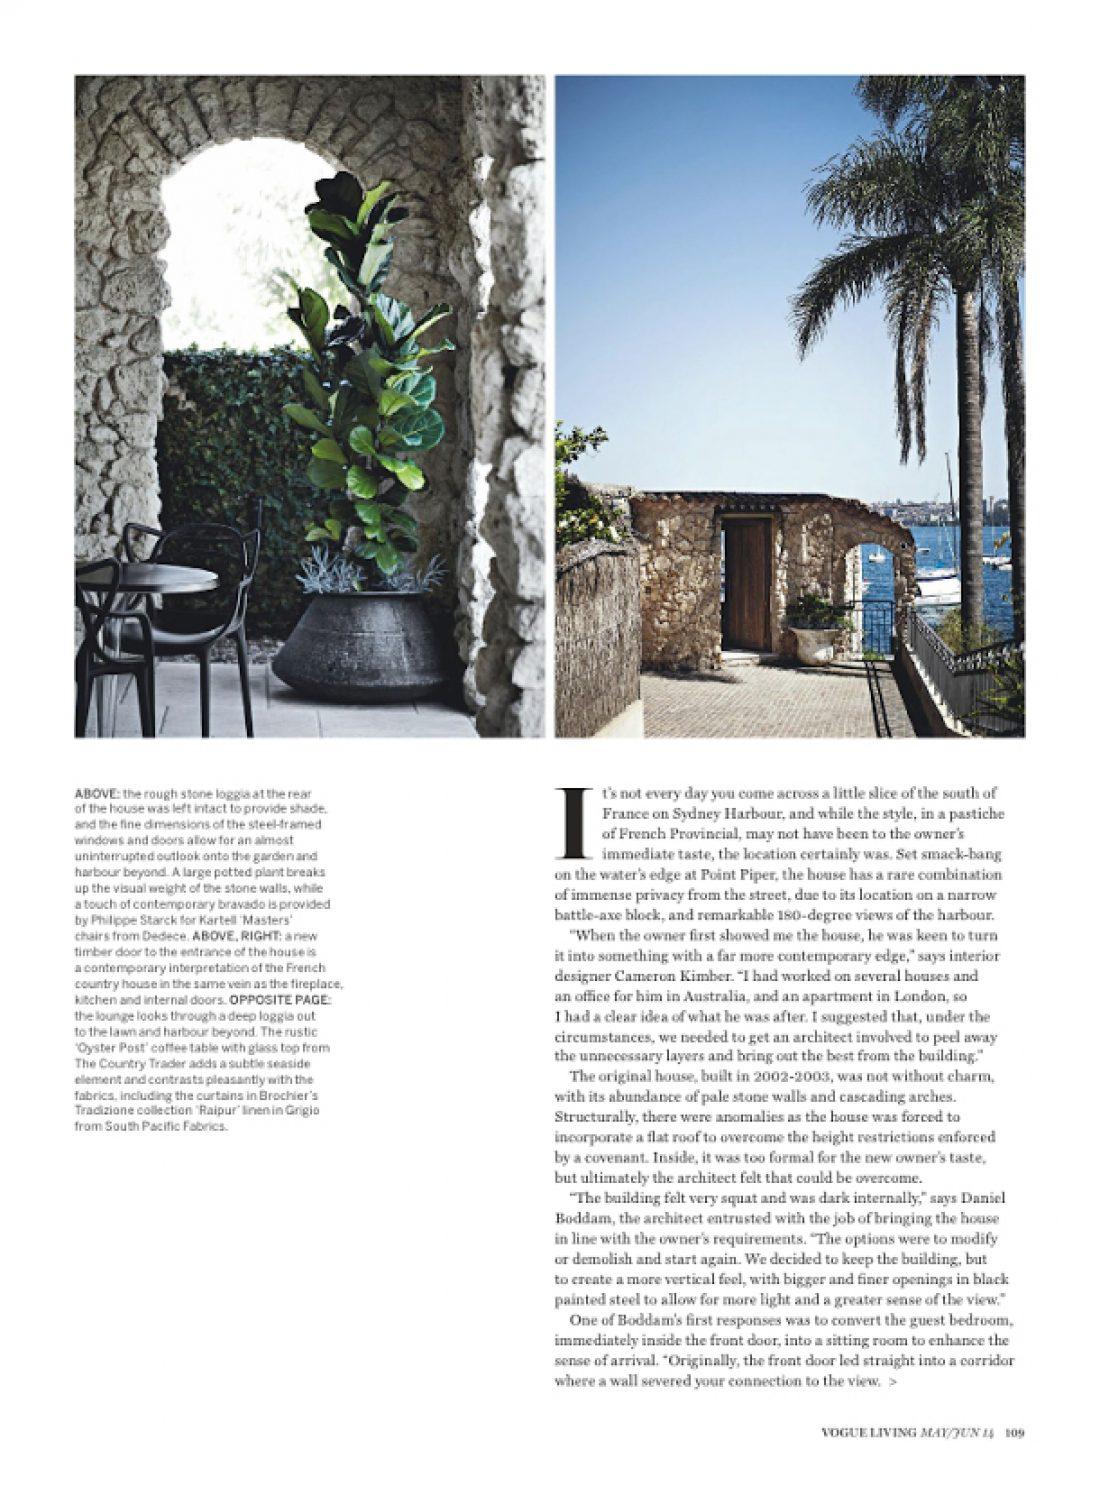 Vogue Living - Point Piper